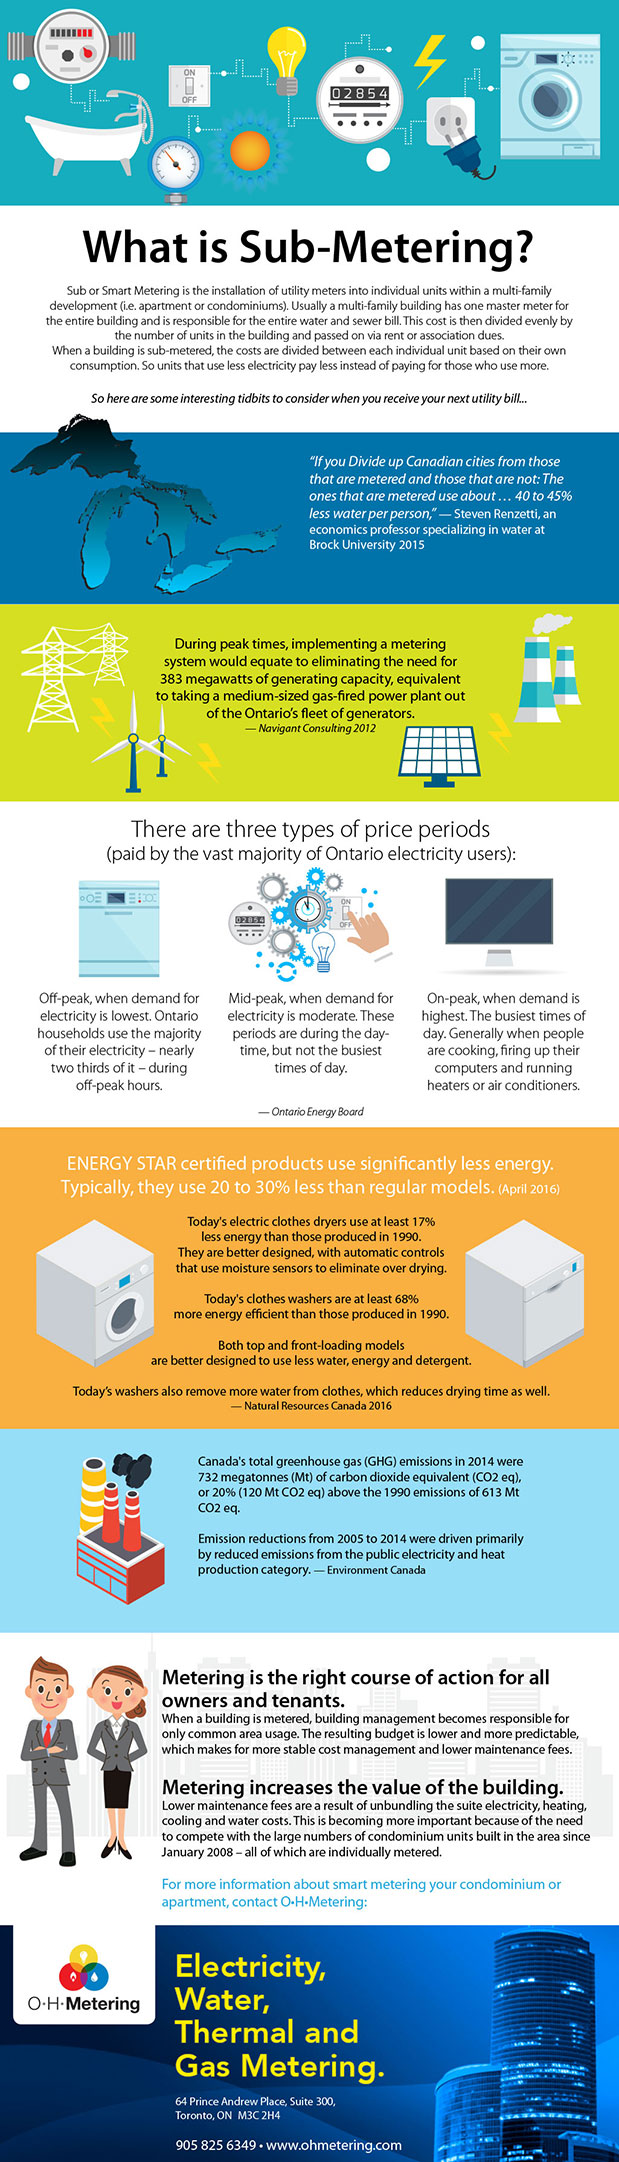 what is sub-metering infographic